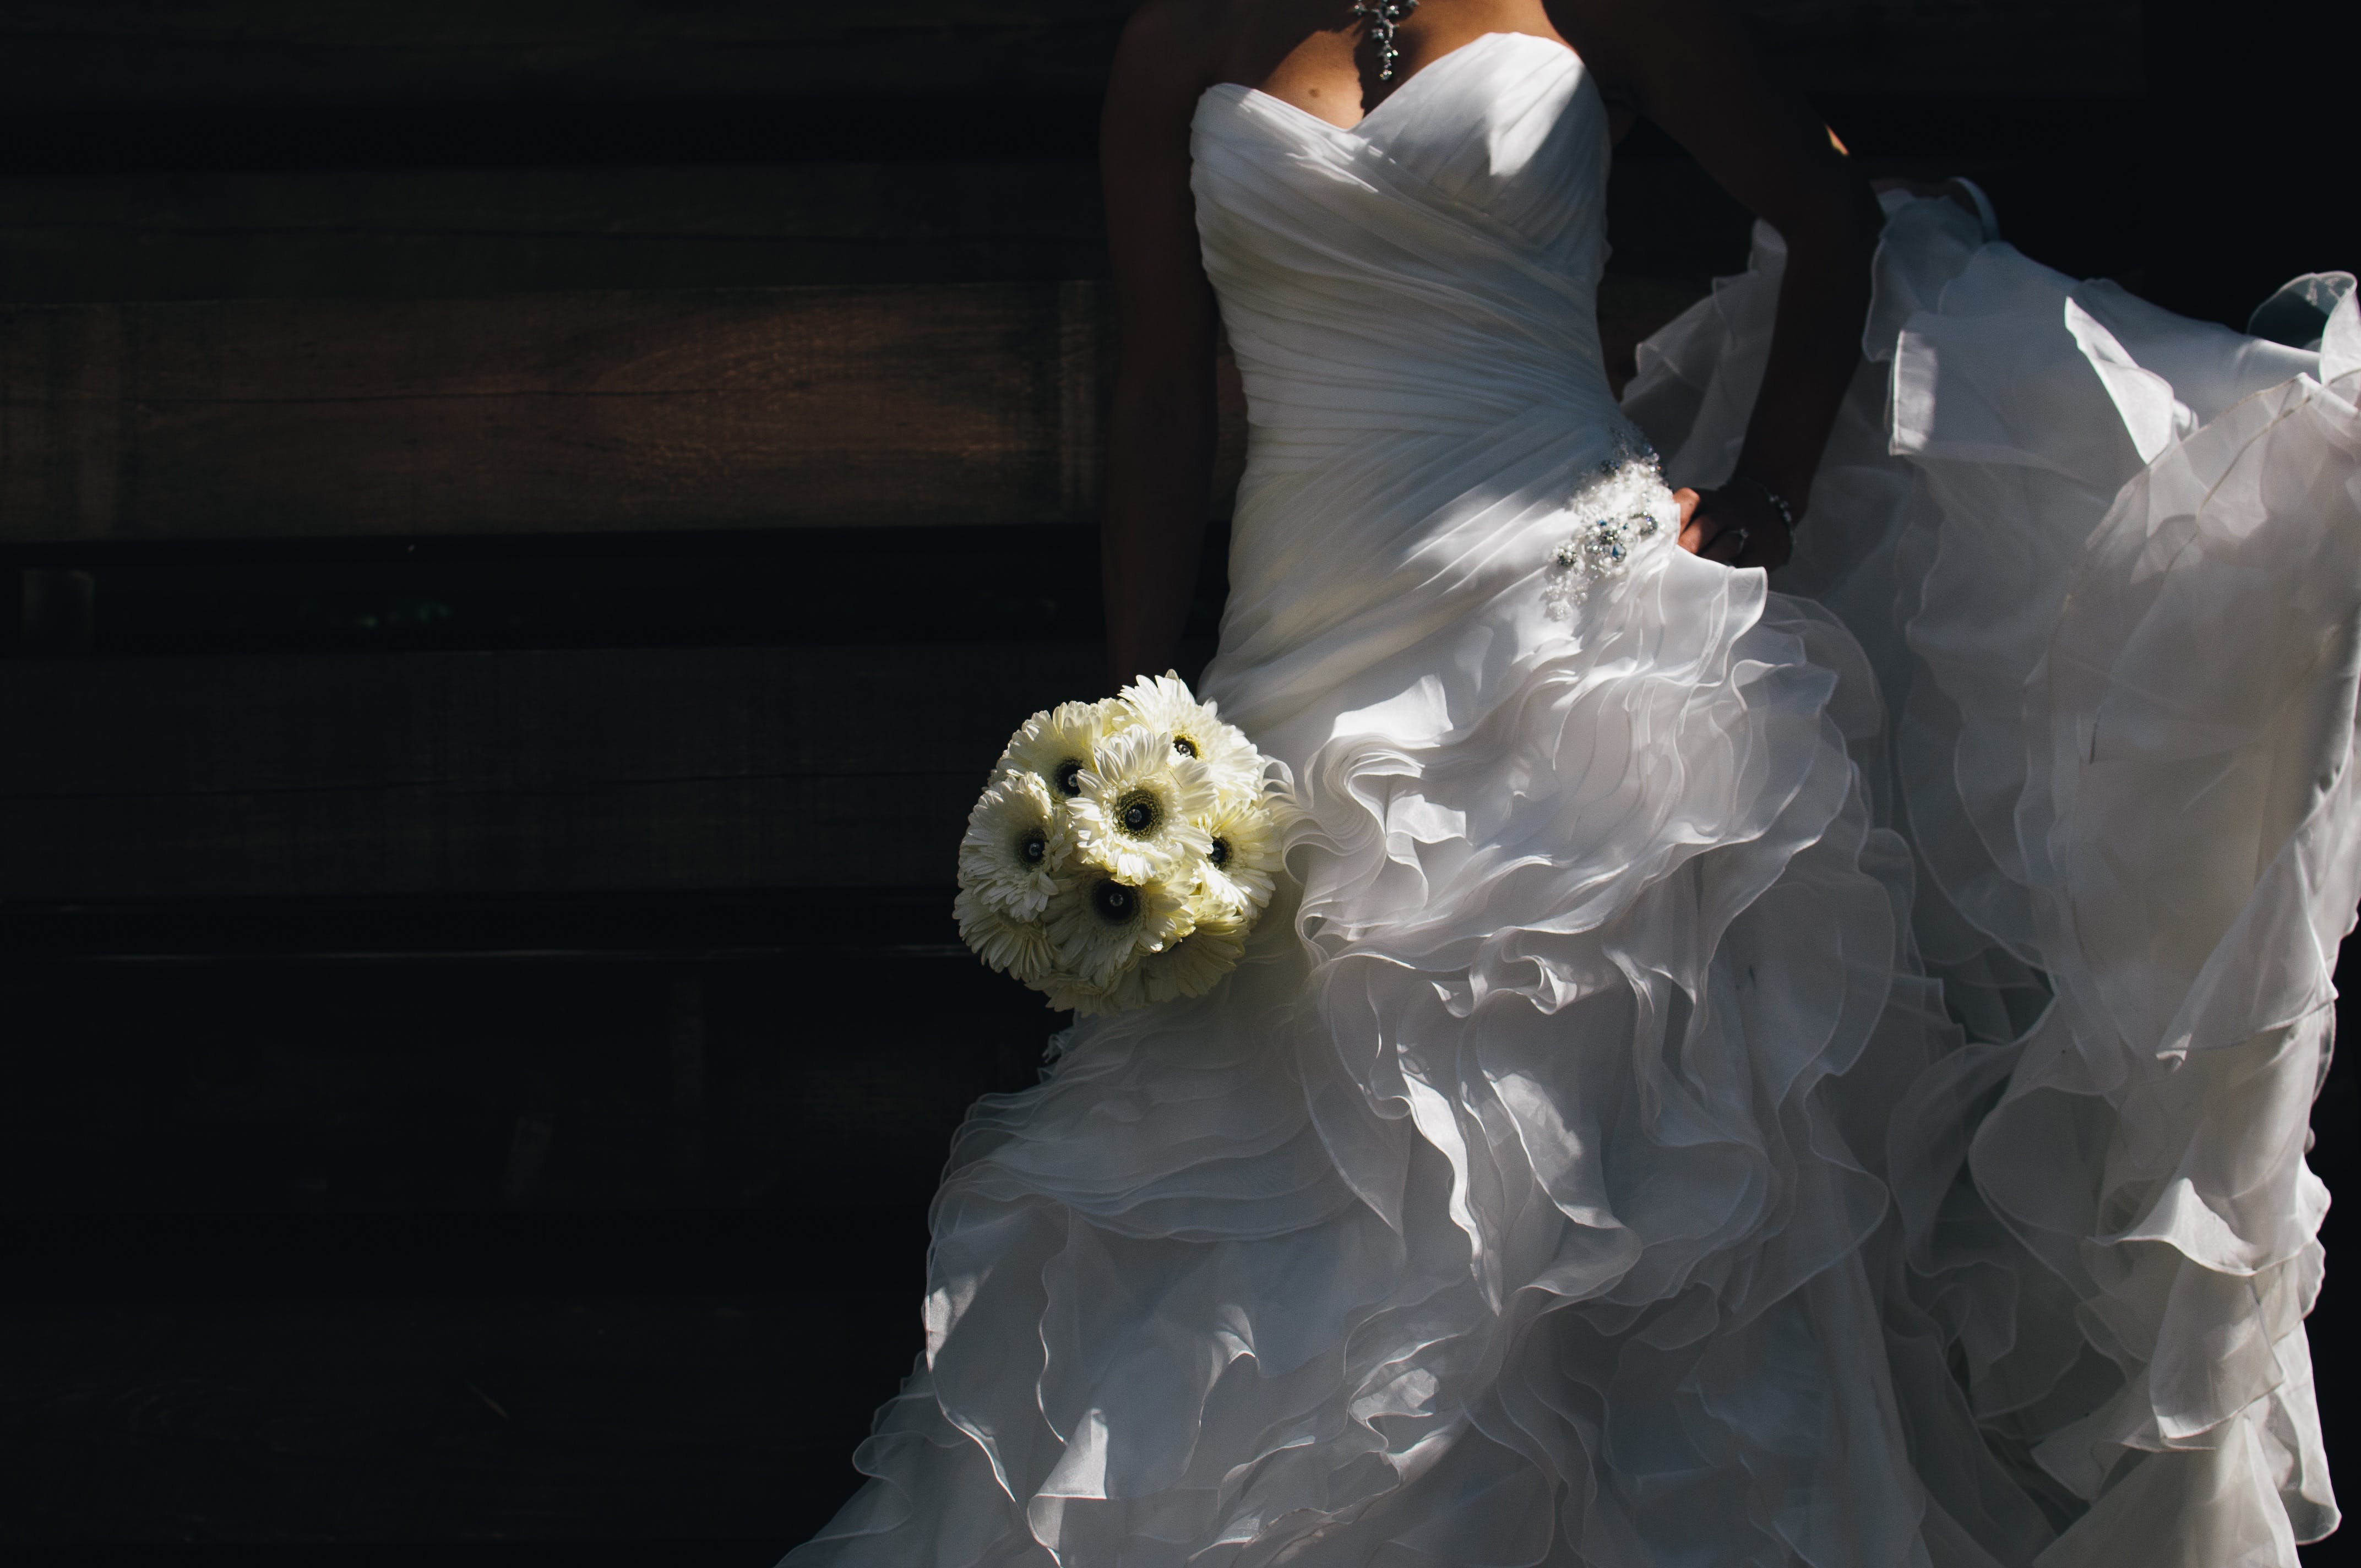 Woman in White Wedding Gown Holding Bouquet